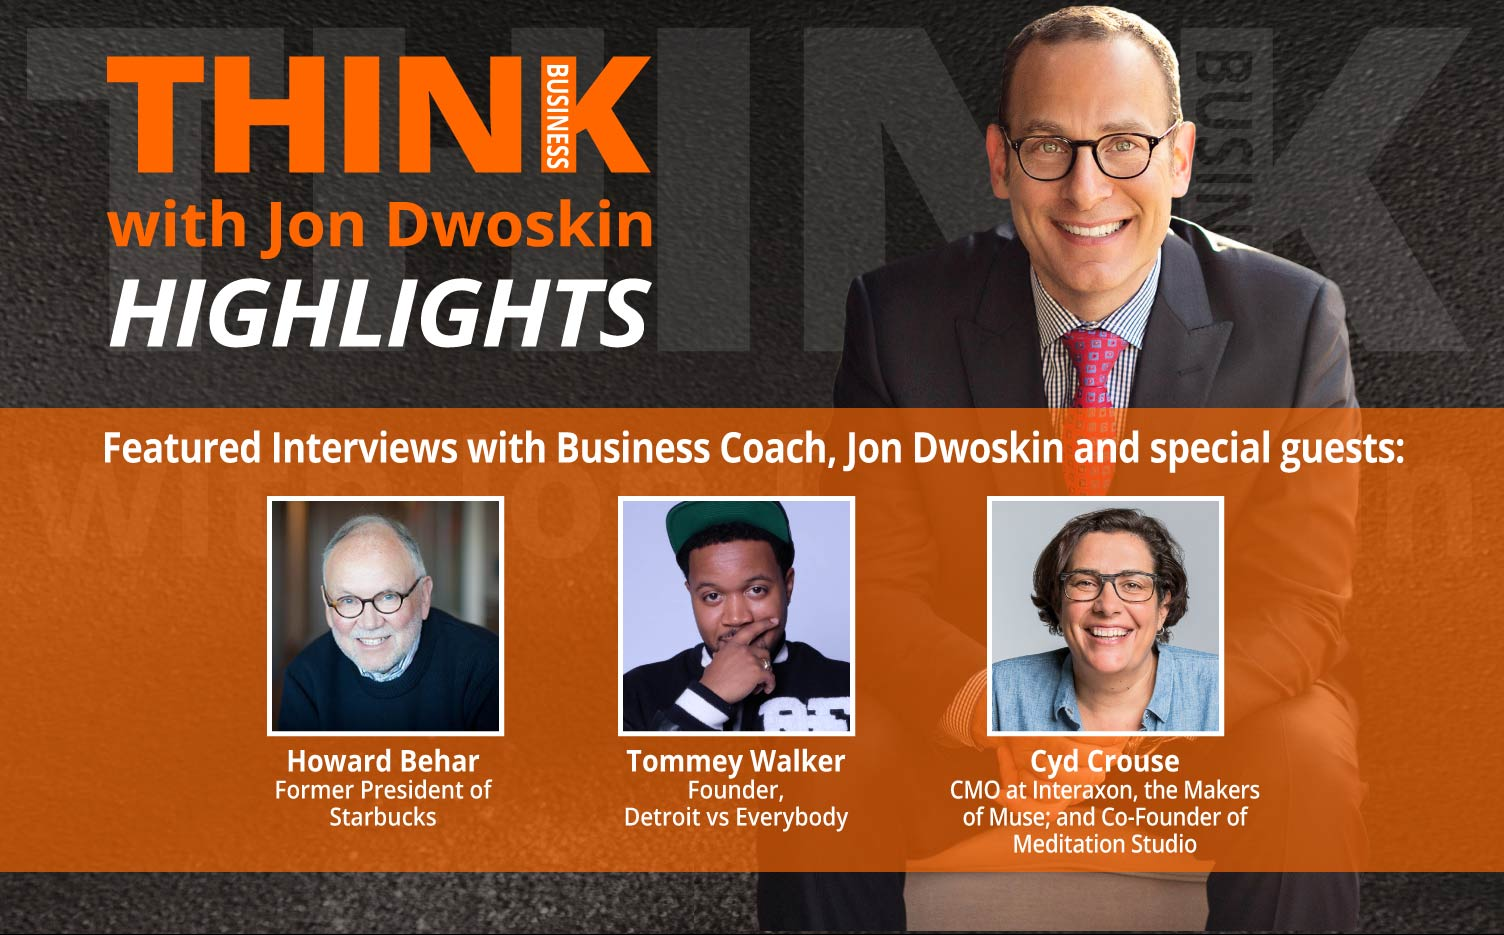 THINK Business: HIGHLIGHTS - Jon Dwoskin Featured Interviews with Howard Behar, Tommey Walker and Cyd Crouse